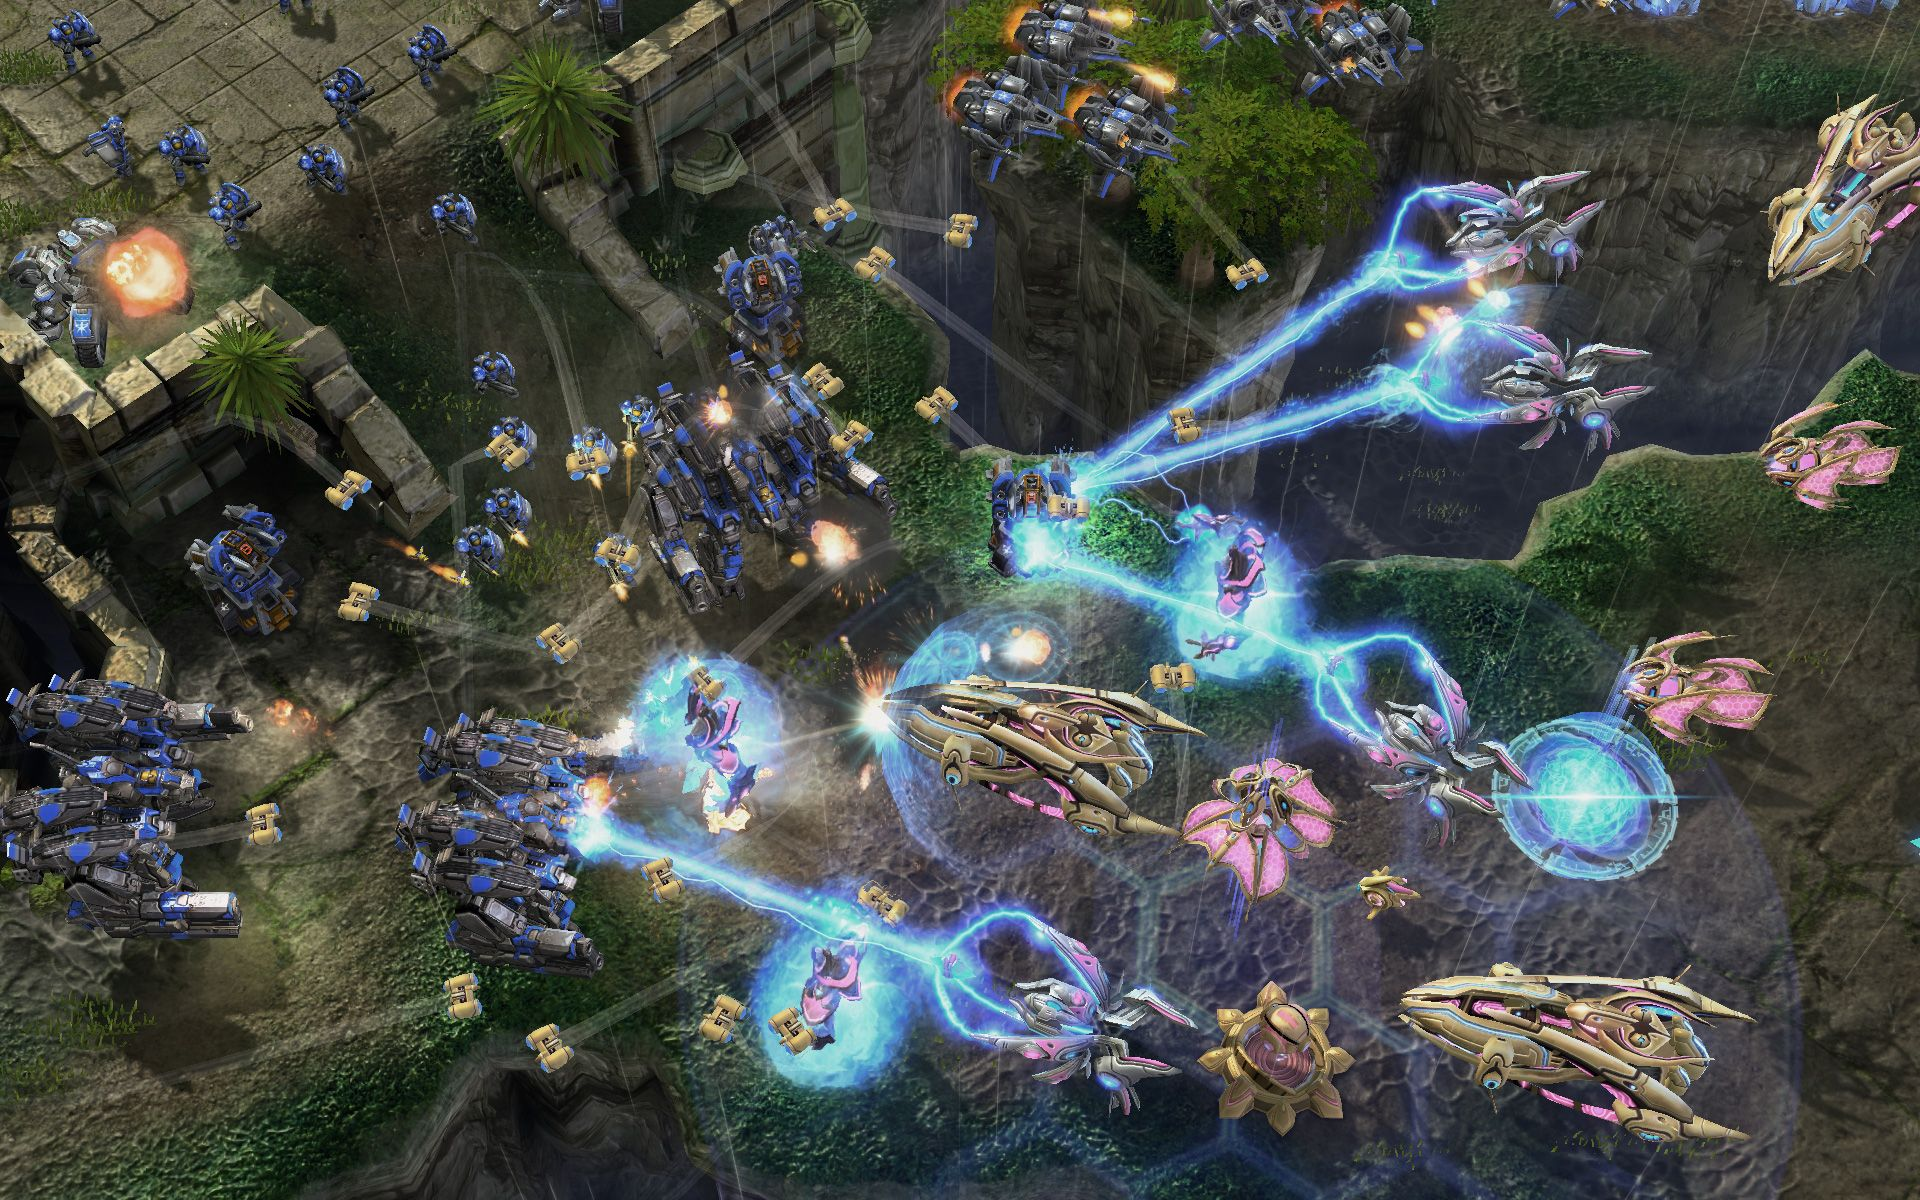 StarCraft II free-to-play model kicks off later this month